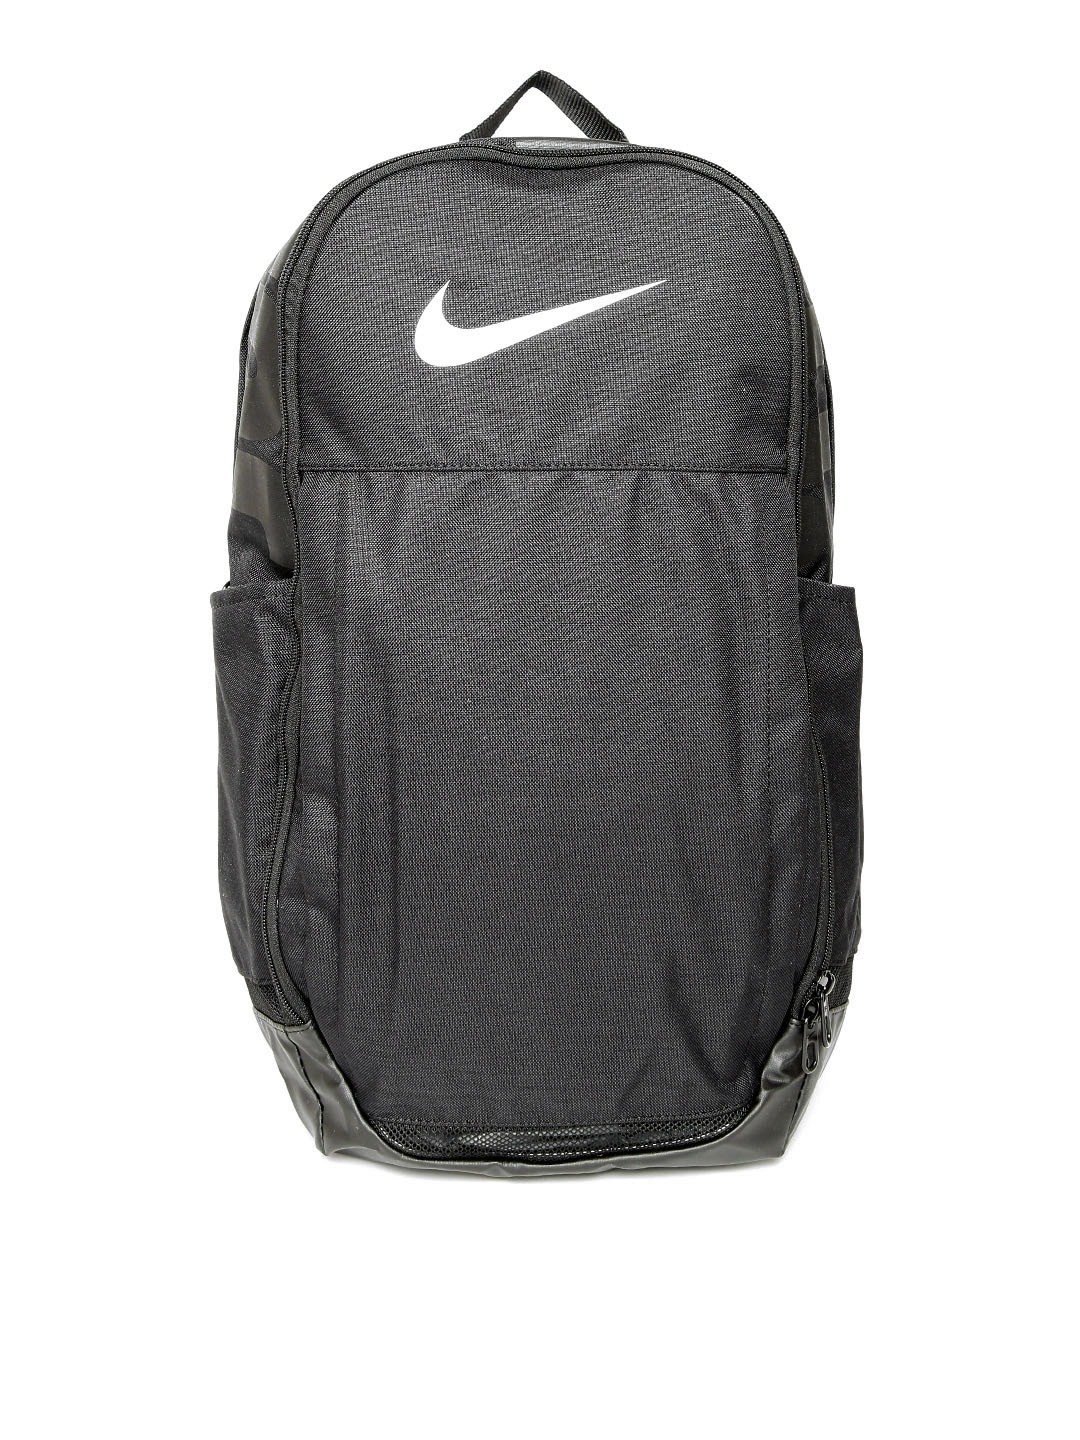 8409790a31a2 Nike Training - Buy Nike Training online in India